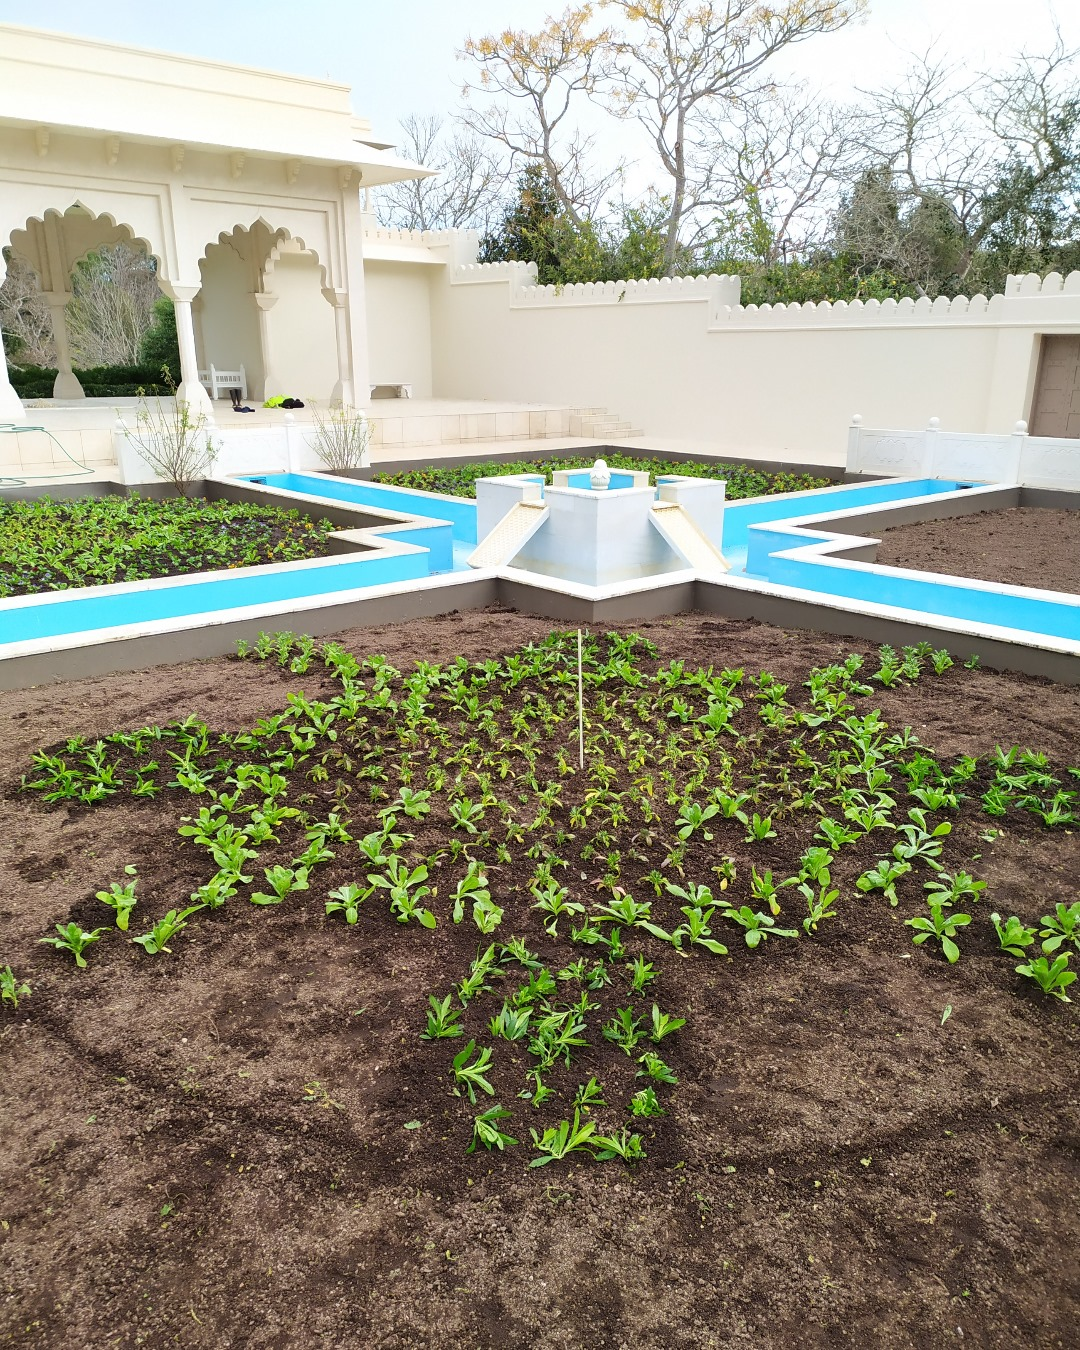 The Indian Char Bagh Garden being re-planted at Hamilton Gardens